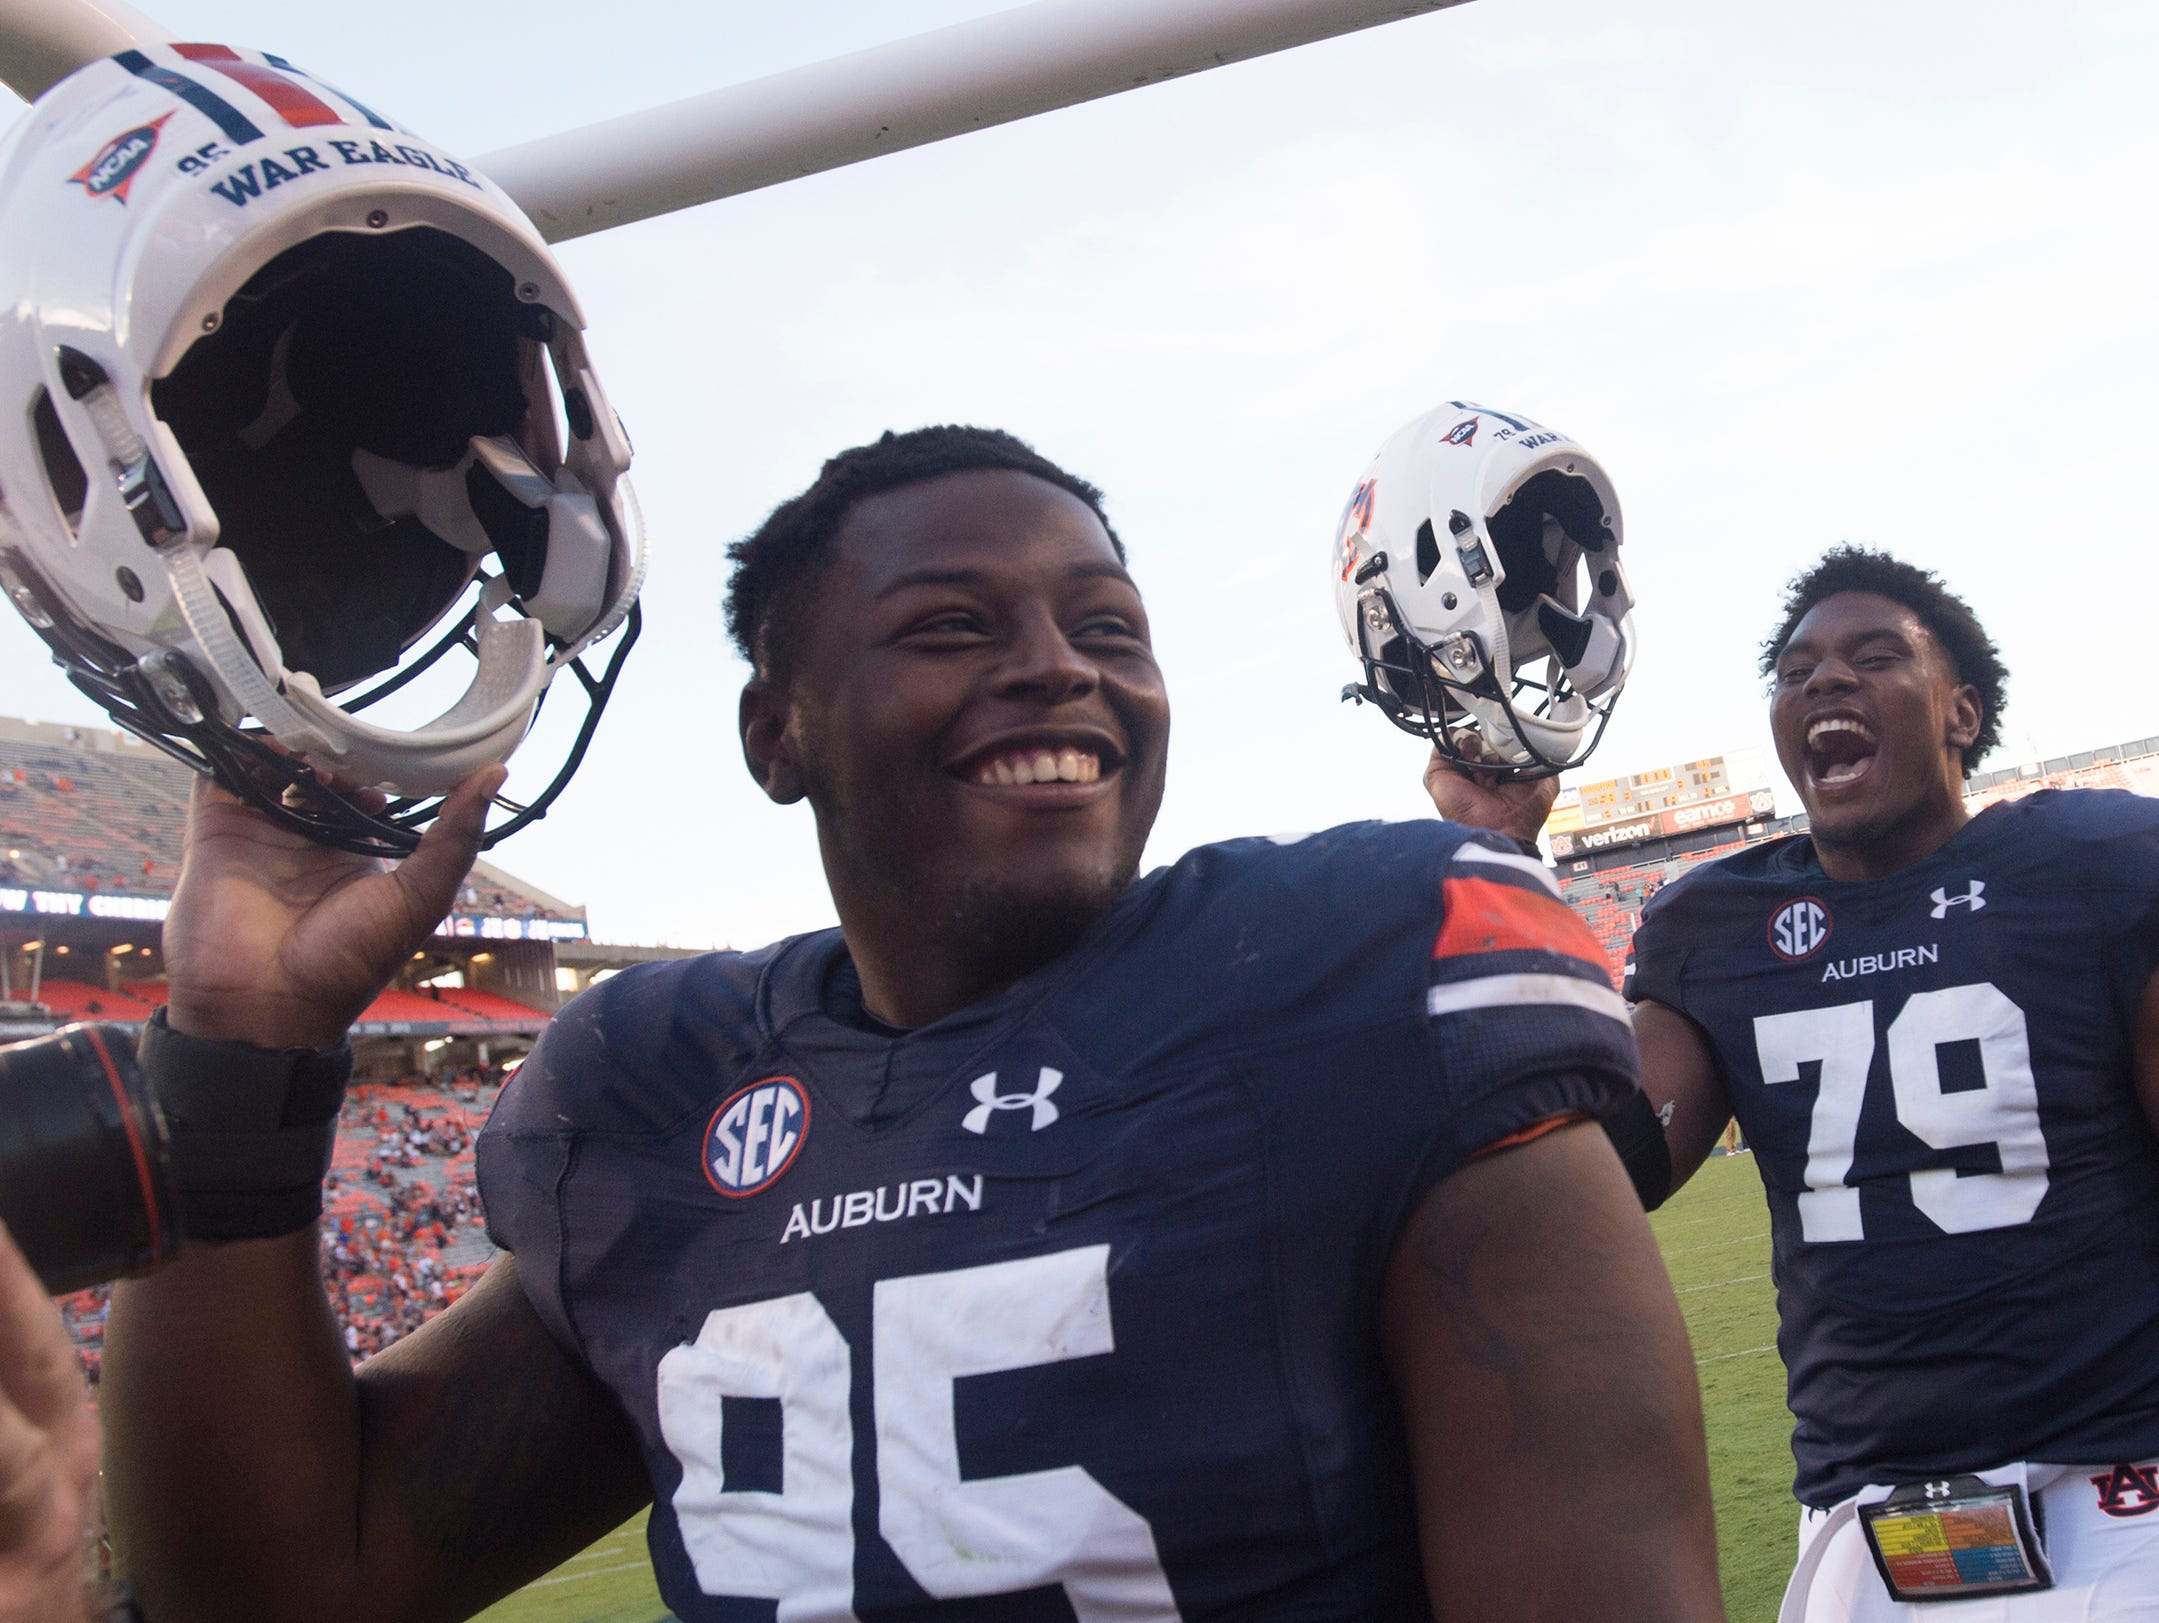 Auburn Tigers defensive lineman Dontavius Russell (95) and Auburn Tigers long snapper Ike Powell (69) walk off the field after Auburn defeated ULM 58-7 in a NCAA football game on Saturday, Oct. 1, 2016, in Auburn, Ala.